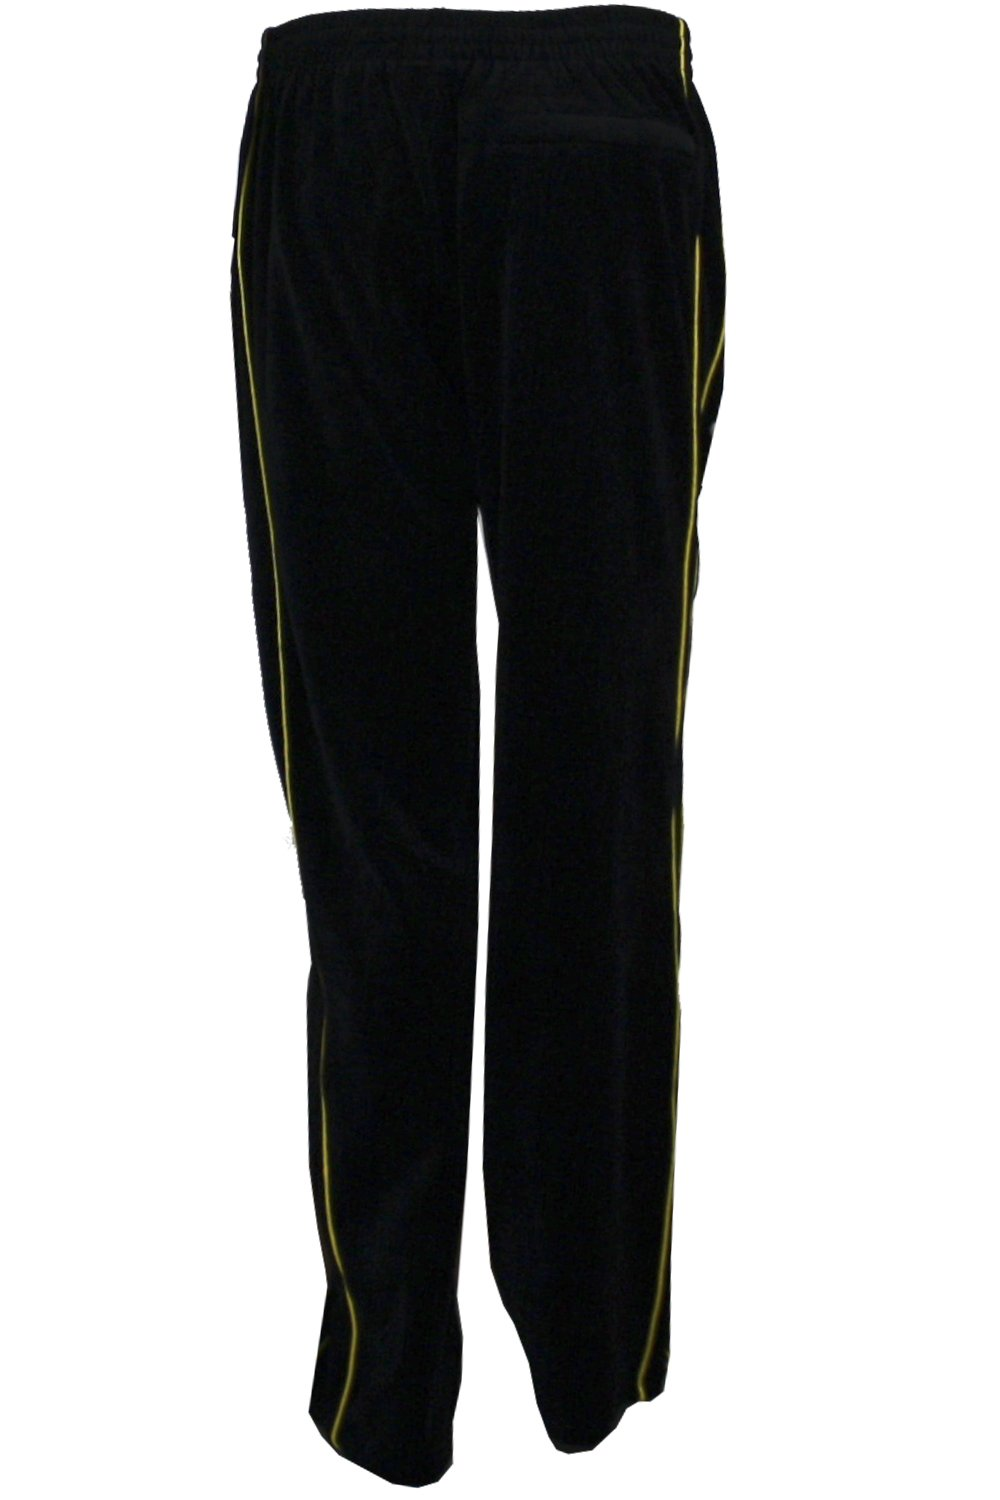 Mens Black Velour Tracksuit with Yellow Piping (Large) by Sweatsedo (Image #6)